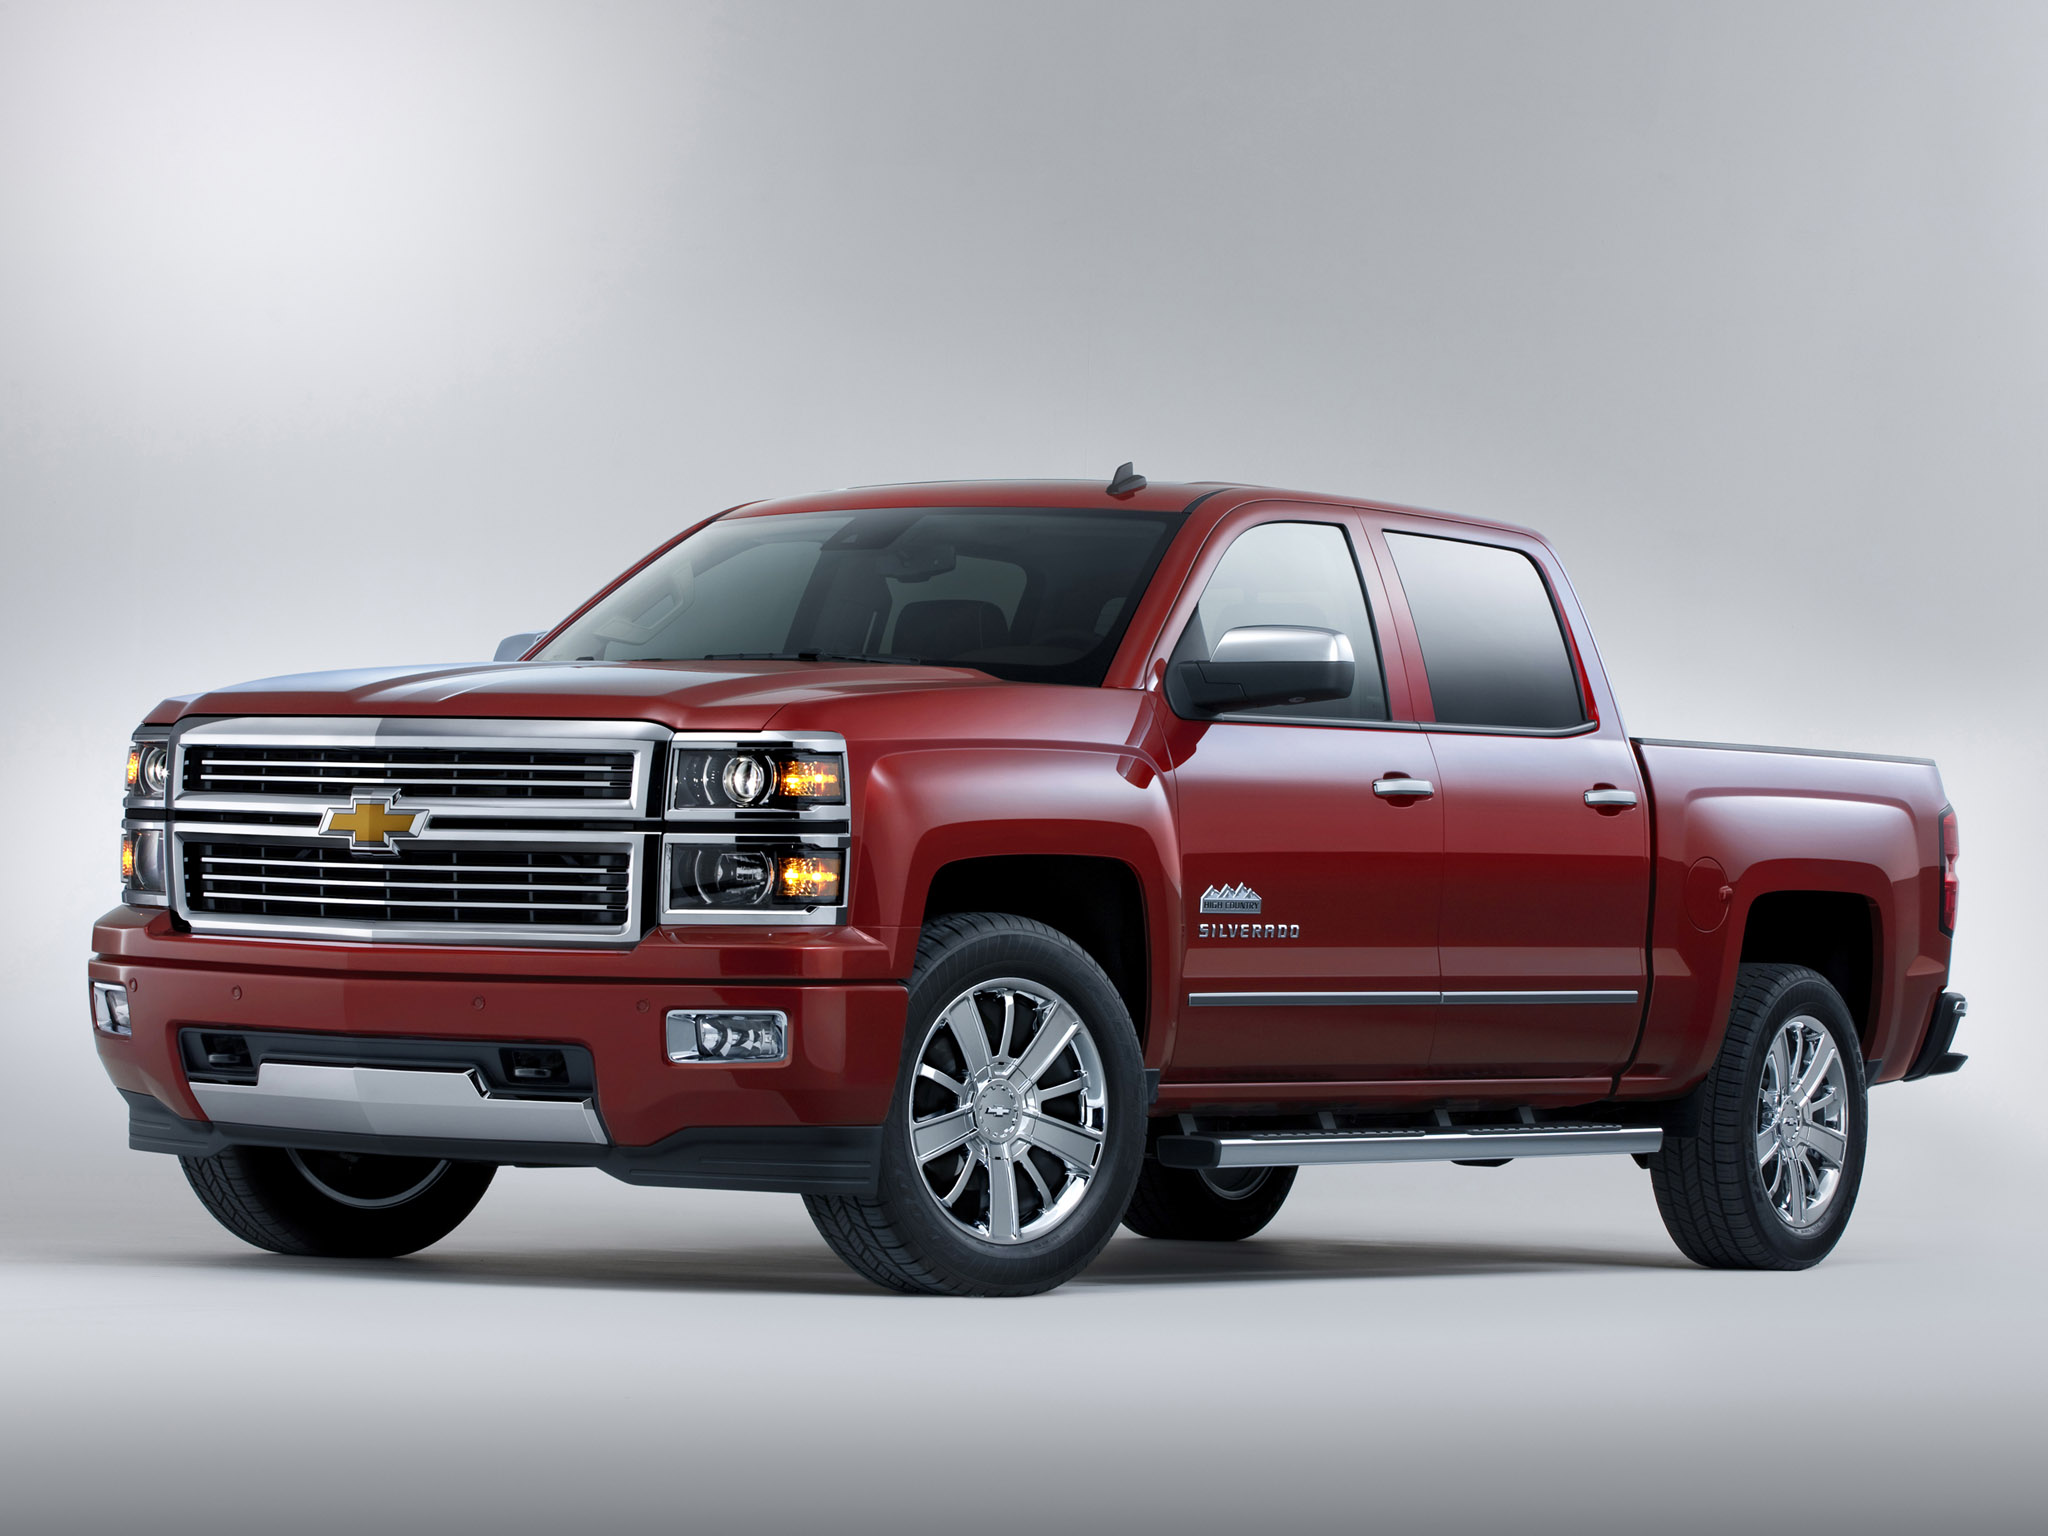 2014 Chevrolet Silverado High Country truck 4x4 d wallpaper background 2048x1536